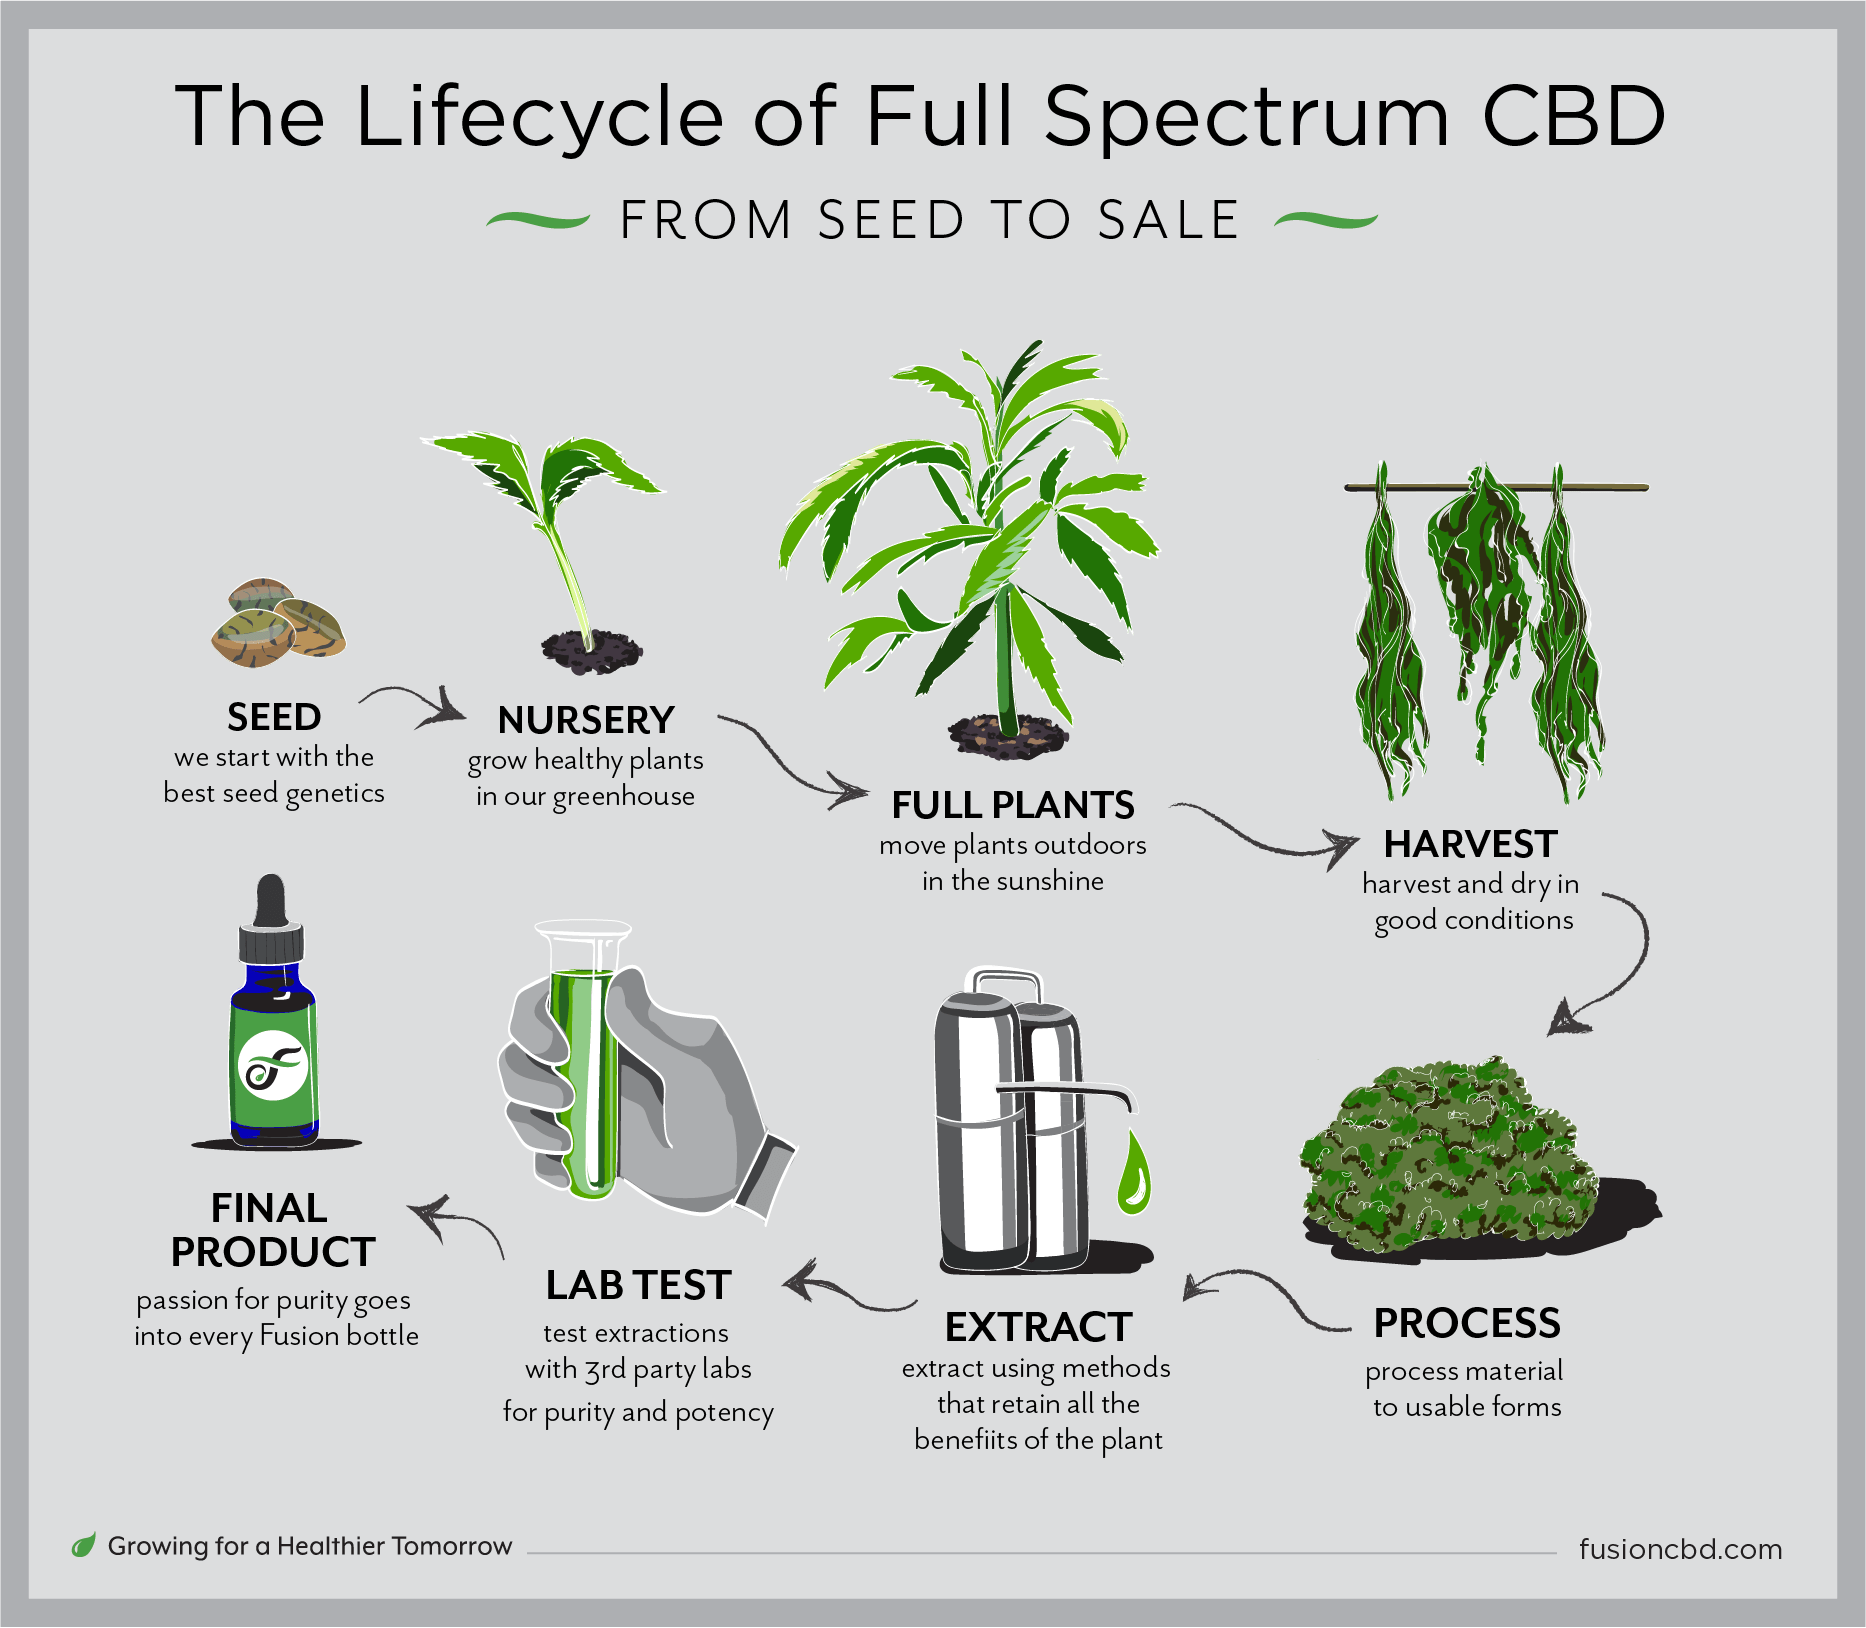 the lifecycle of fusion CBD hemp from seed to sale